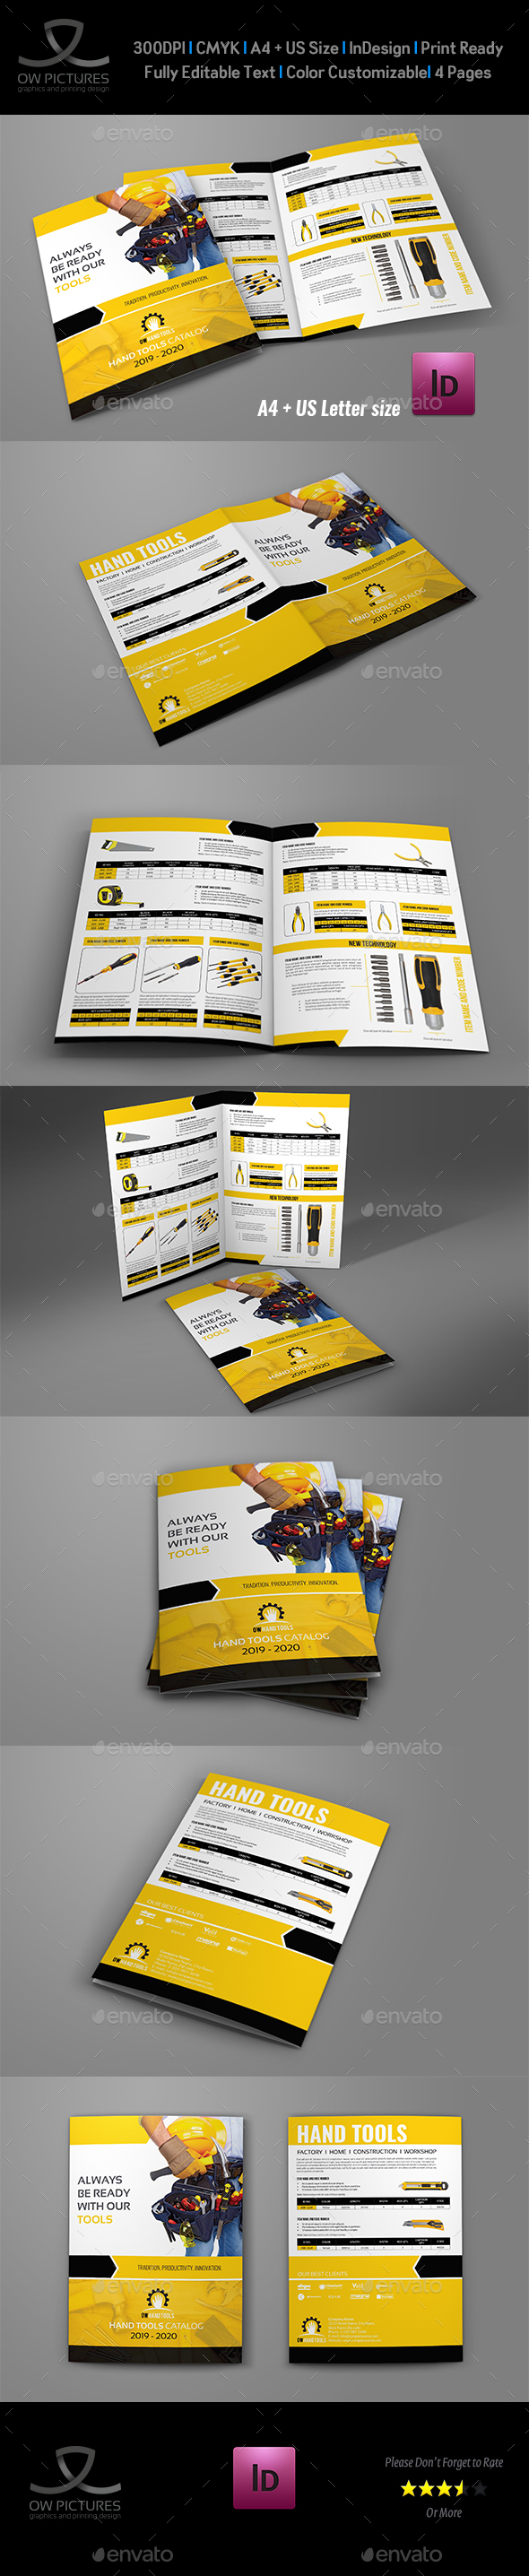 Hand Tools Products Catalog Bi- Fold Brochure Template - Catalogs Brochures